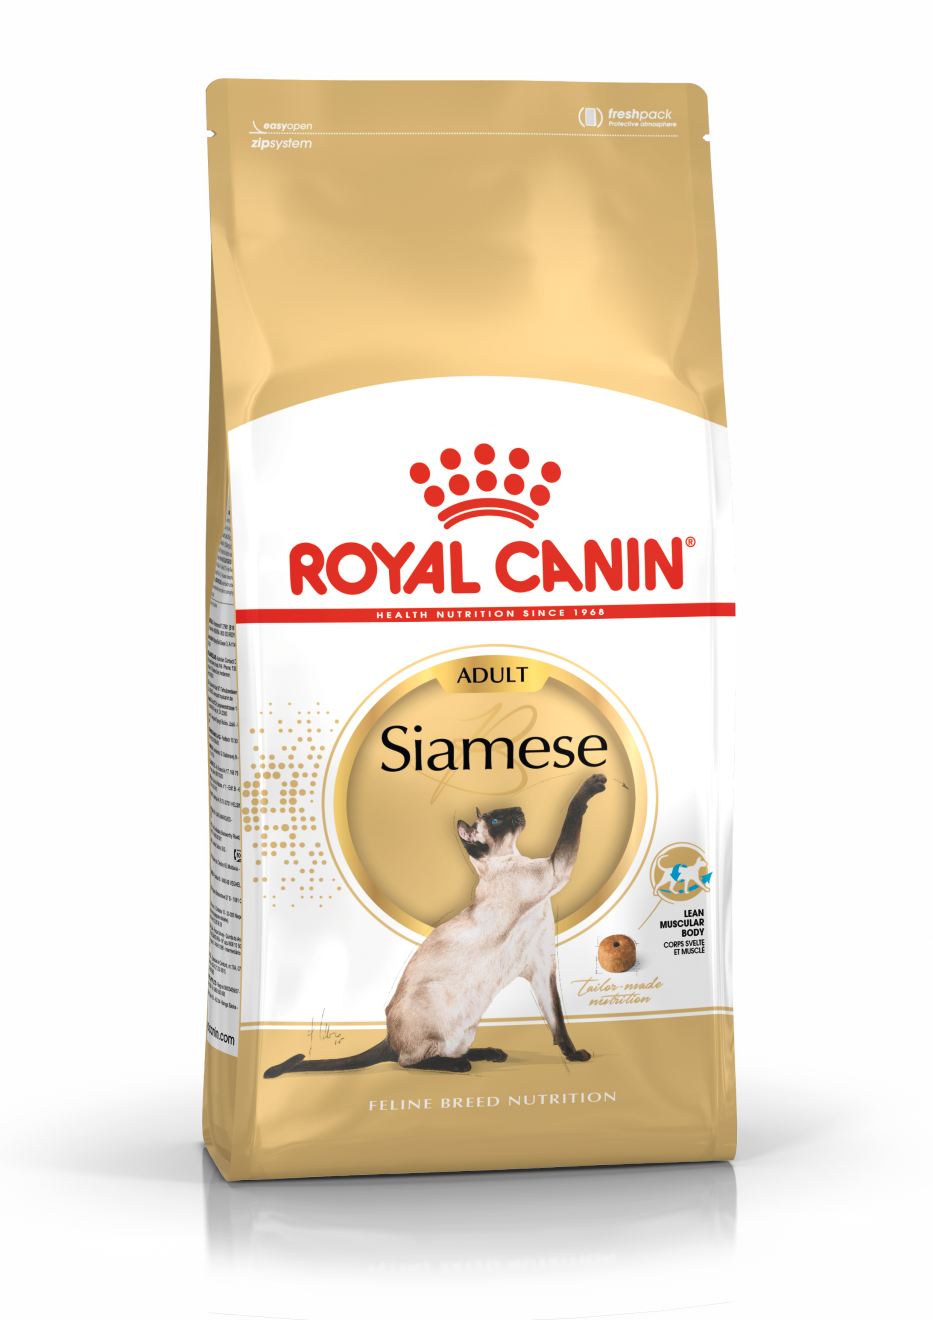 ROYAL CANIN® Siamese Adult Cat Food